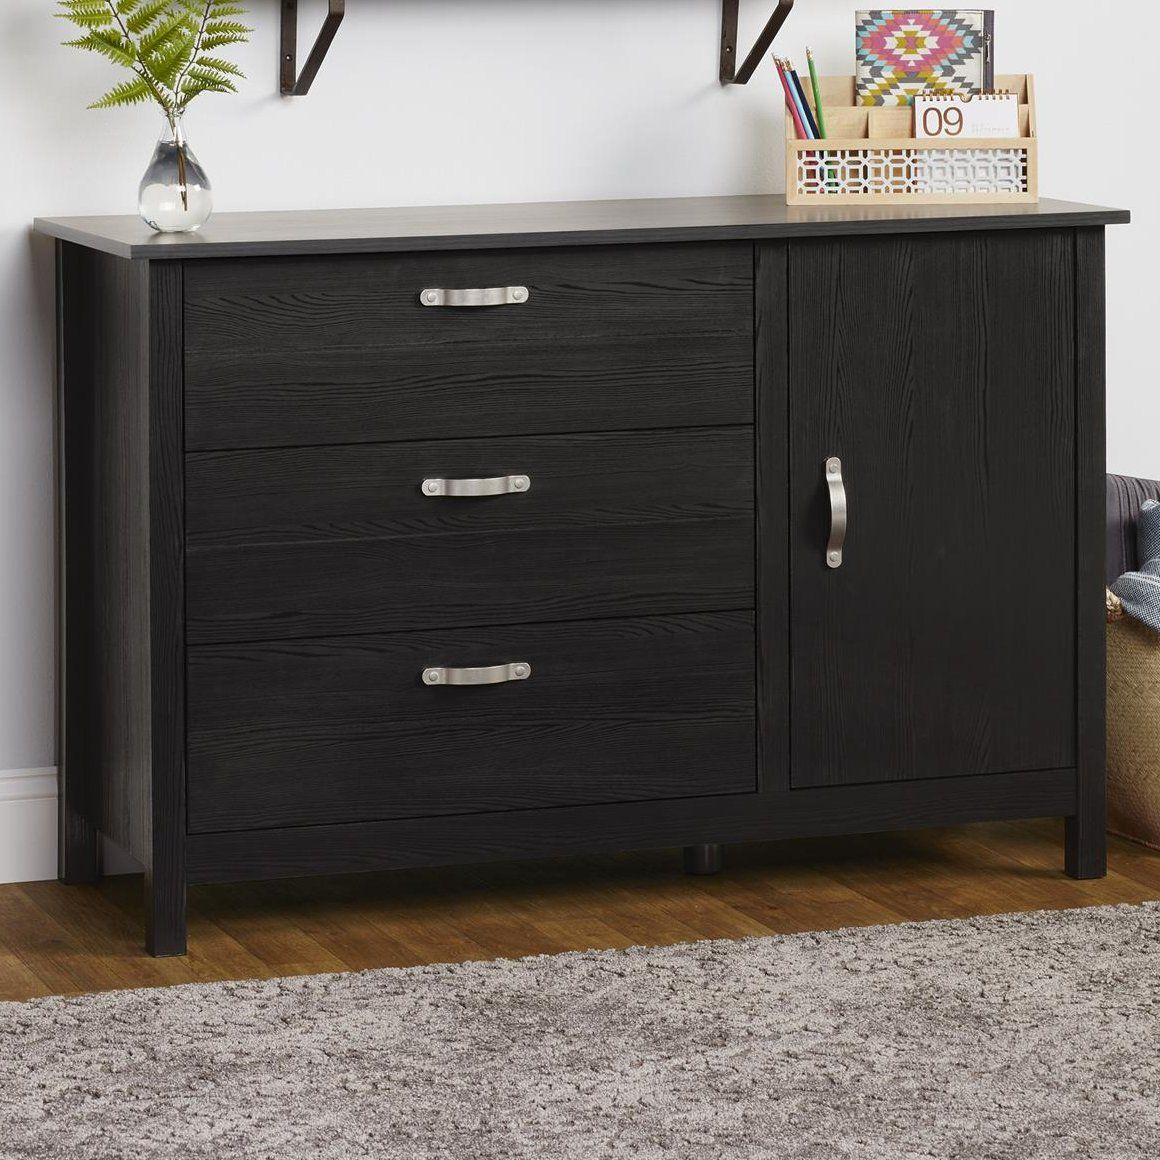 Alain drawer dresser products pinterest products